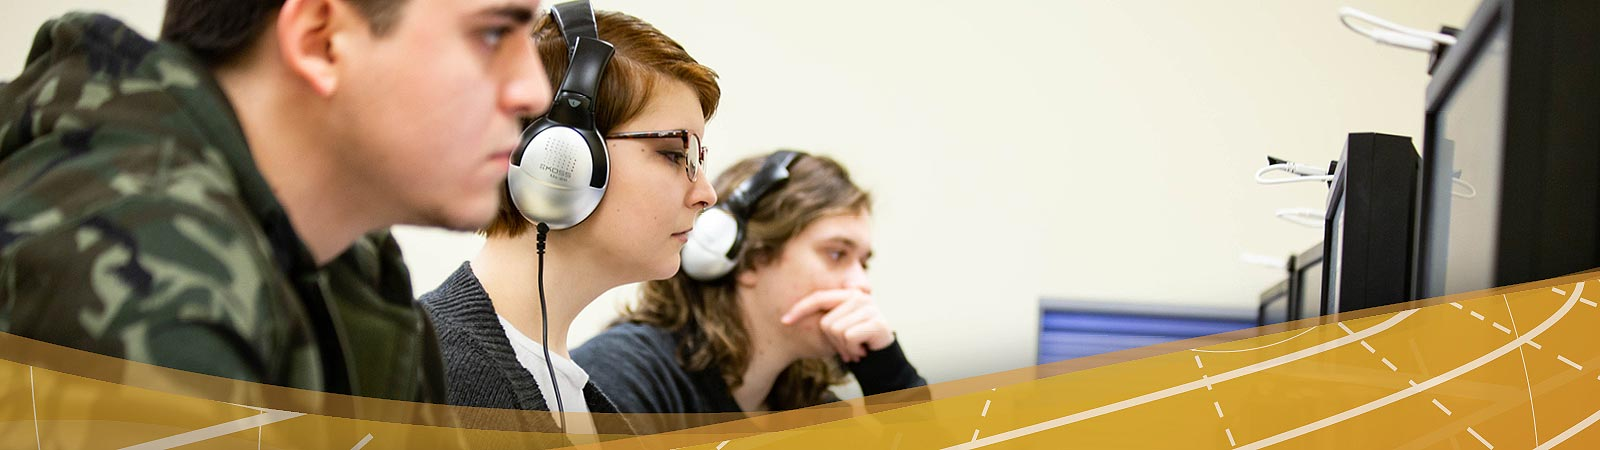 Students wearing headphones while working on digital video projects